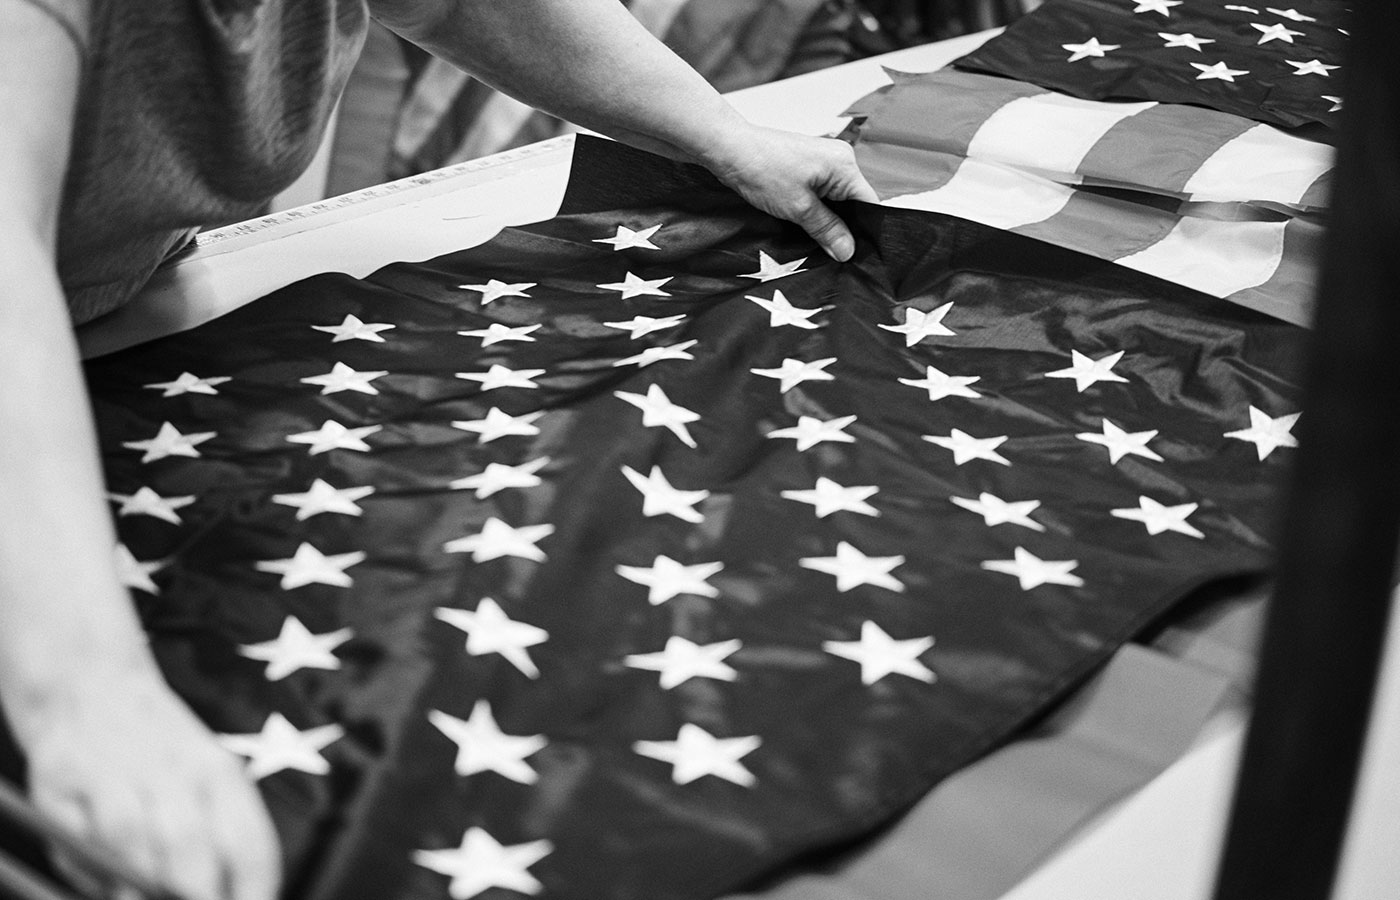 Click through the slideshow above for Jack O'Connor's exclusive photos of the Annin Flagmakers factory in Coshocton, Ohio